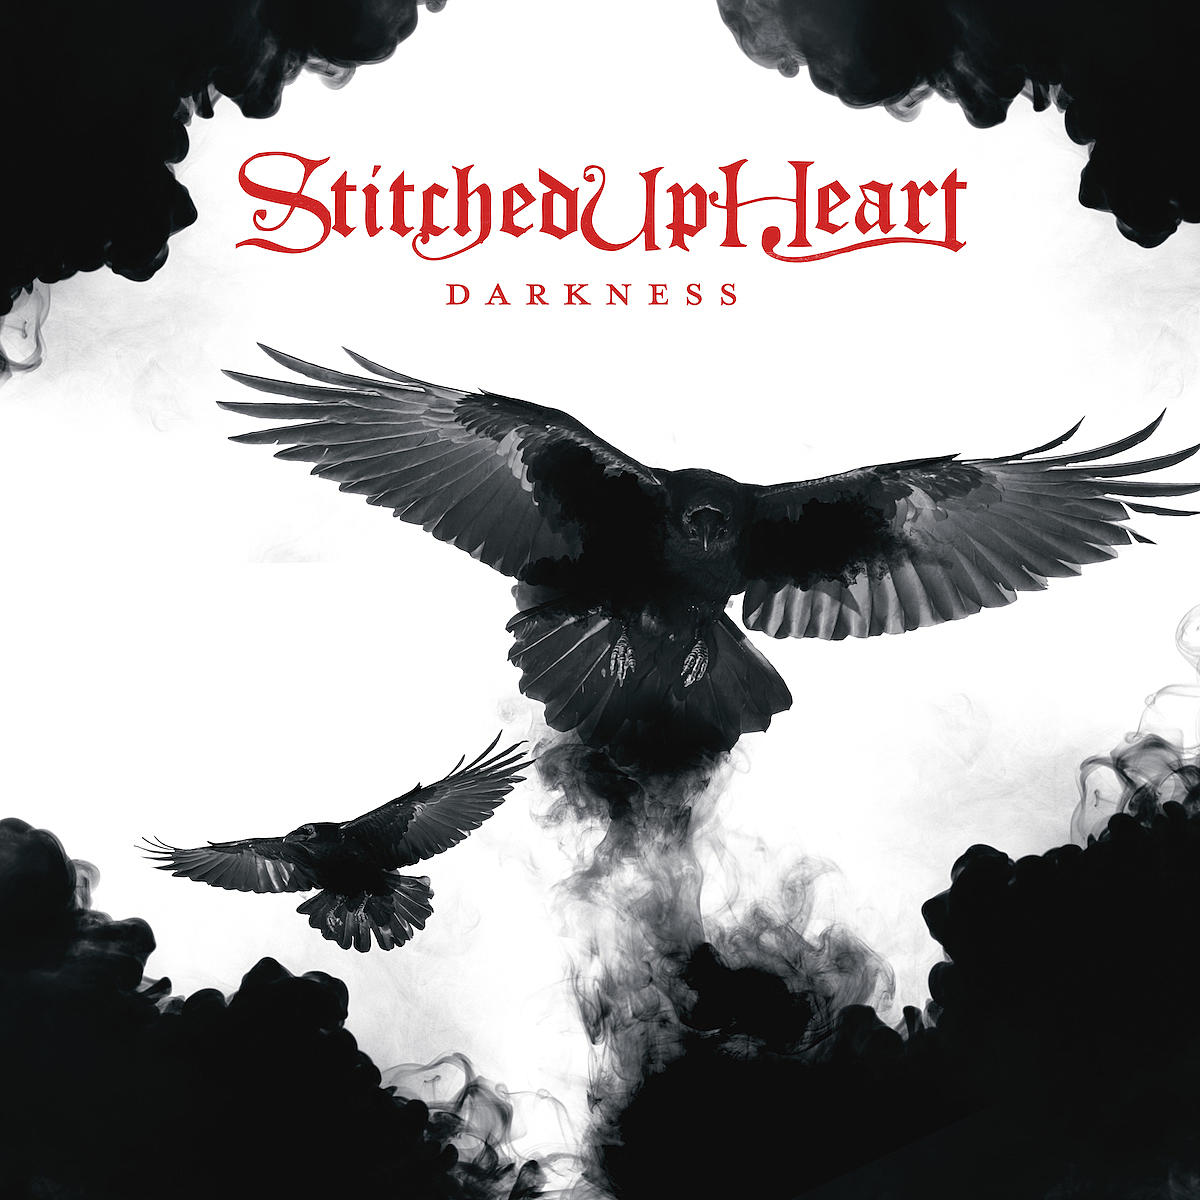 Stitched Up Heart Release Optimistic New Song 'Darkness'